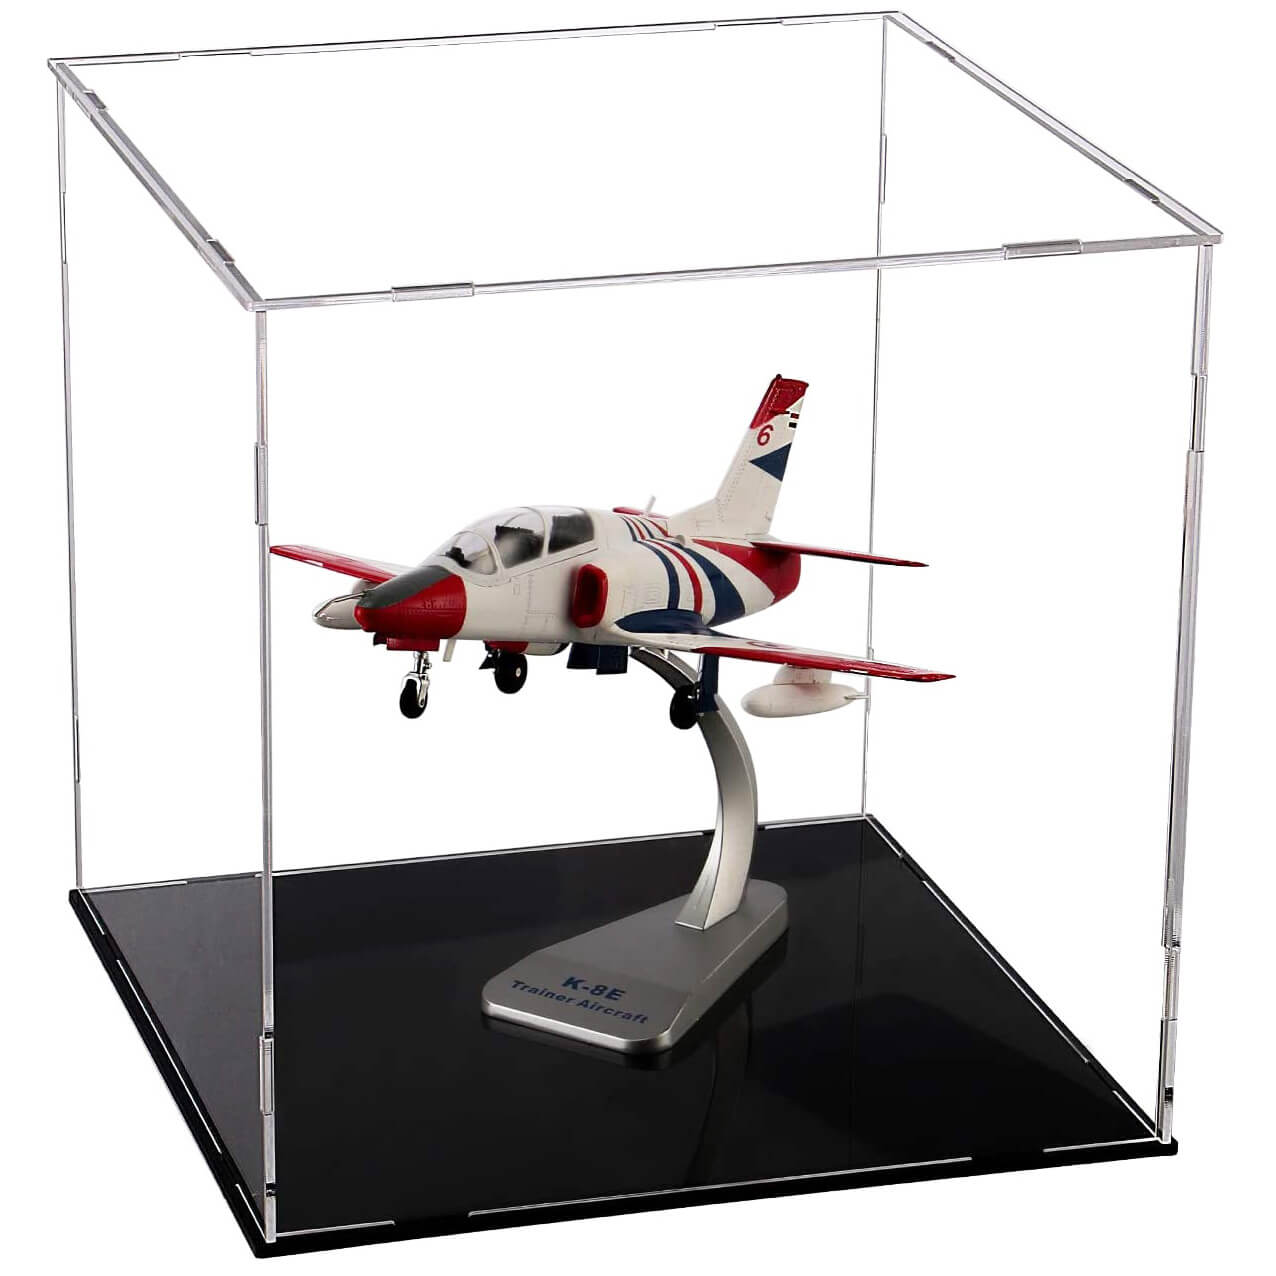 Assembled Clear Acrylic Display Case For Collectibles With Black Base